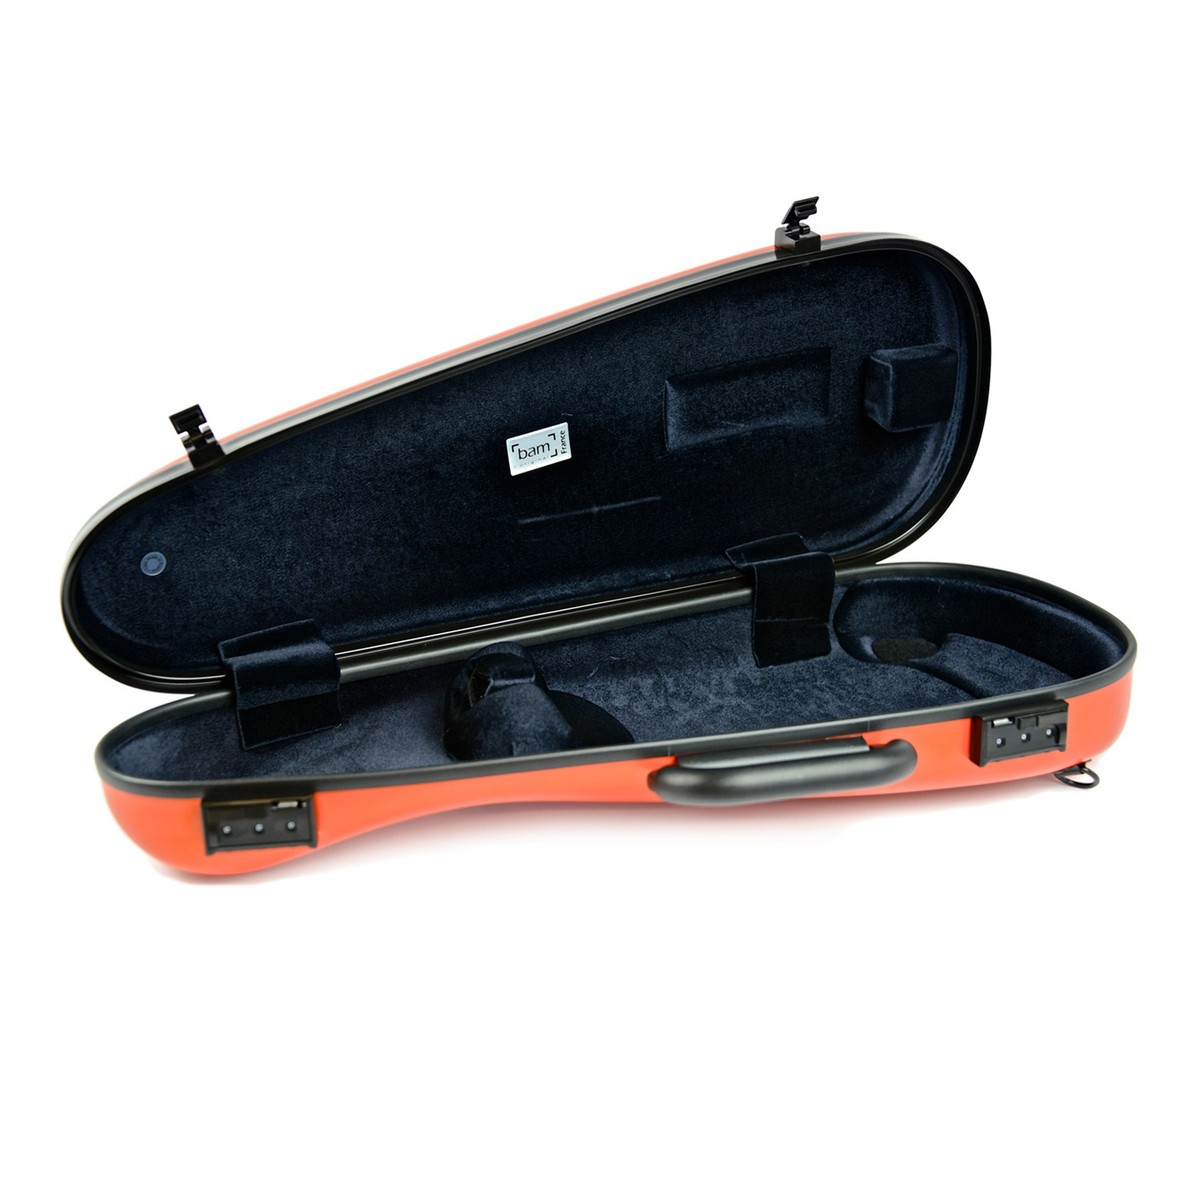 bam 2003xl hightech cabin violin case orange at